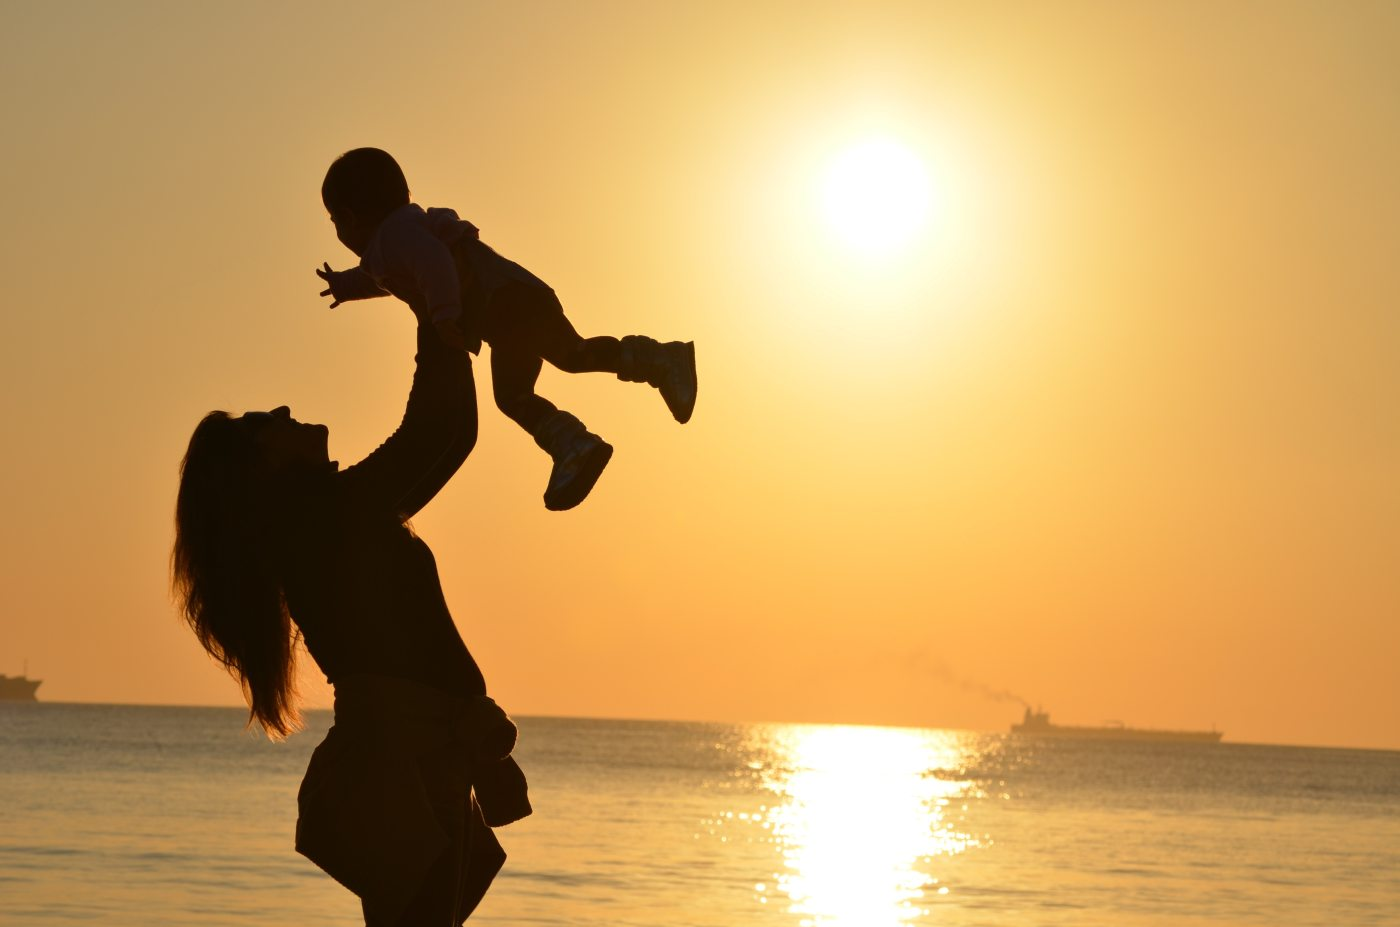 mom holding kid high up in the air